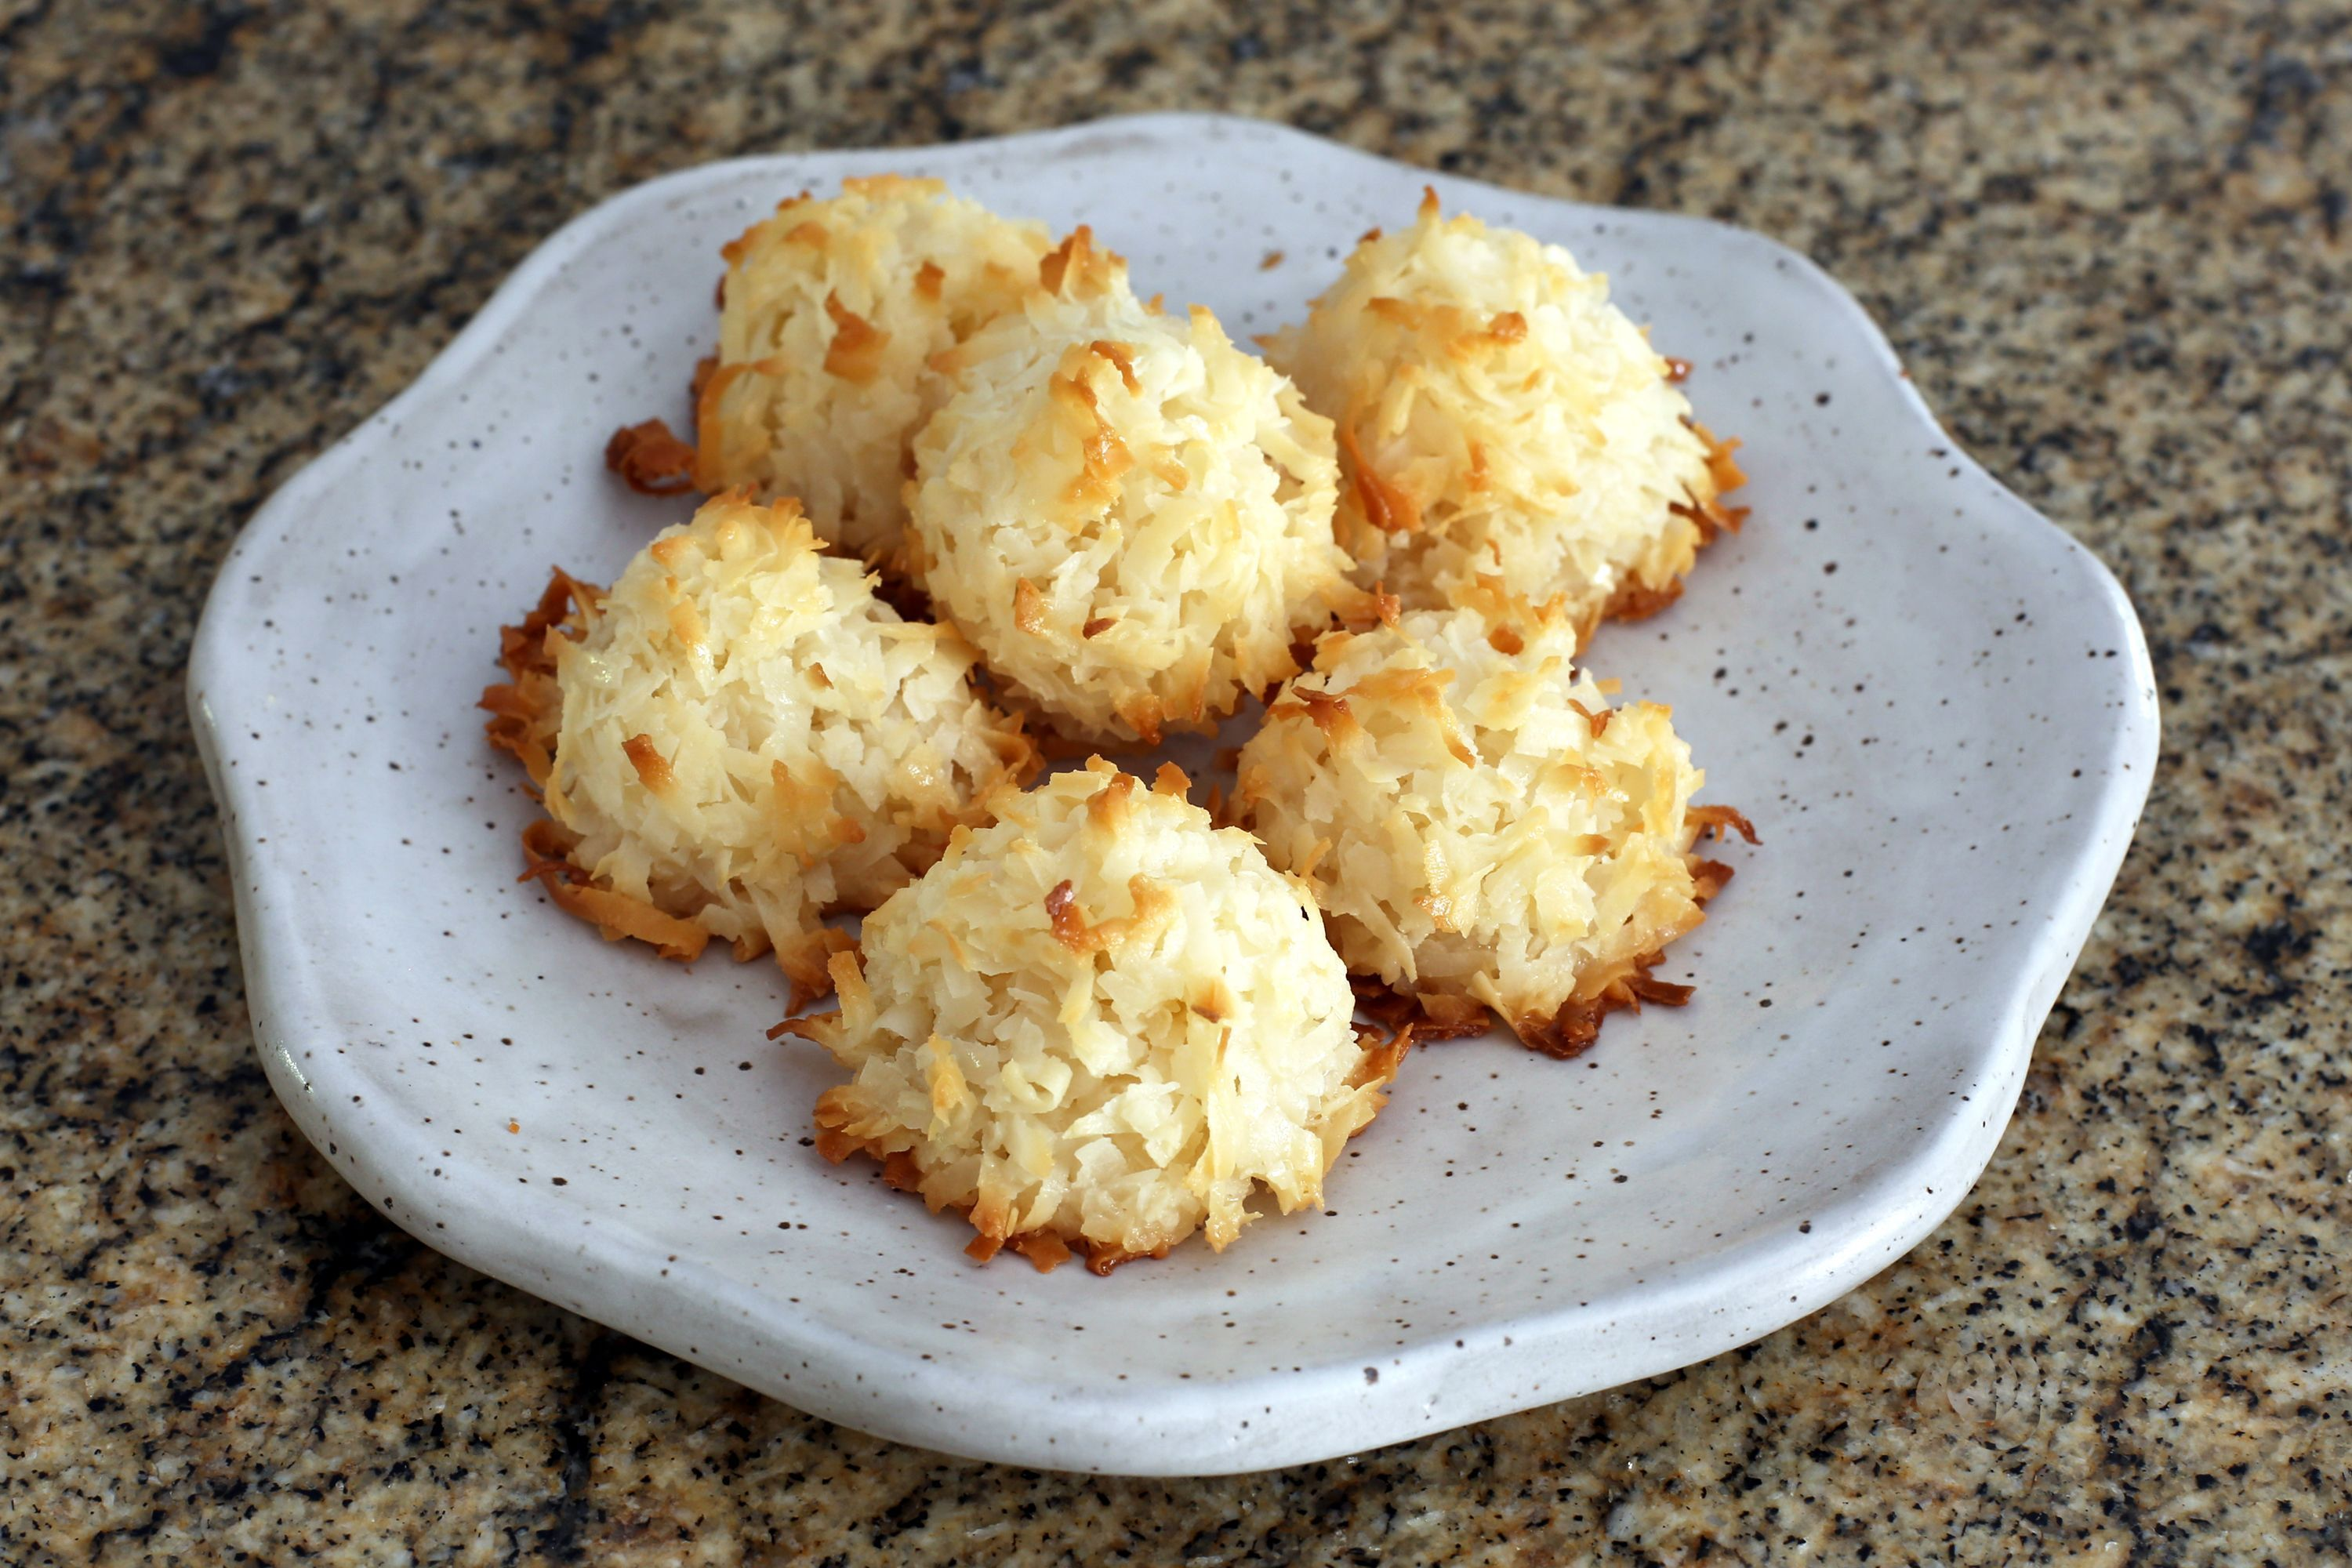 These Quick And Easy Coconut Macaroons Are Made With Coconut And Sweetened Condensed Milk Only 3 I Coconut Macaroons Macaroon Recipes Coconut Macaroons Recipe